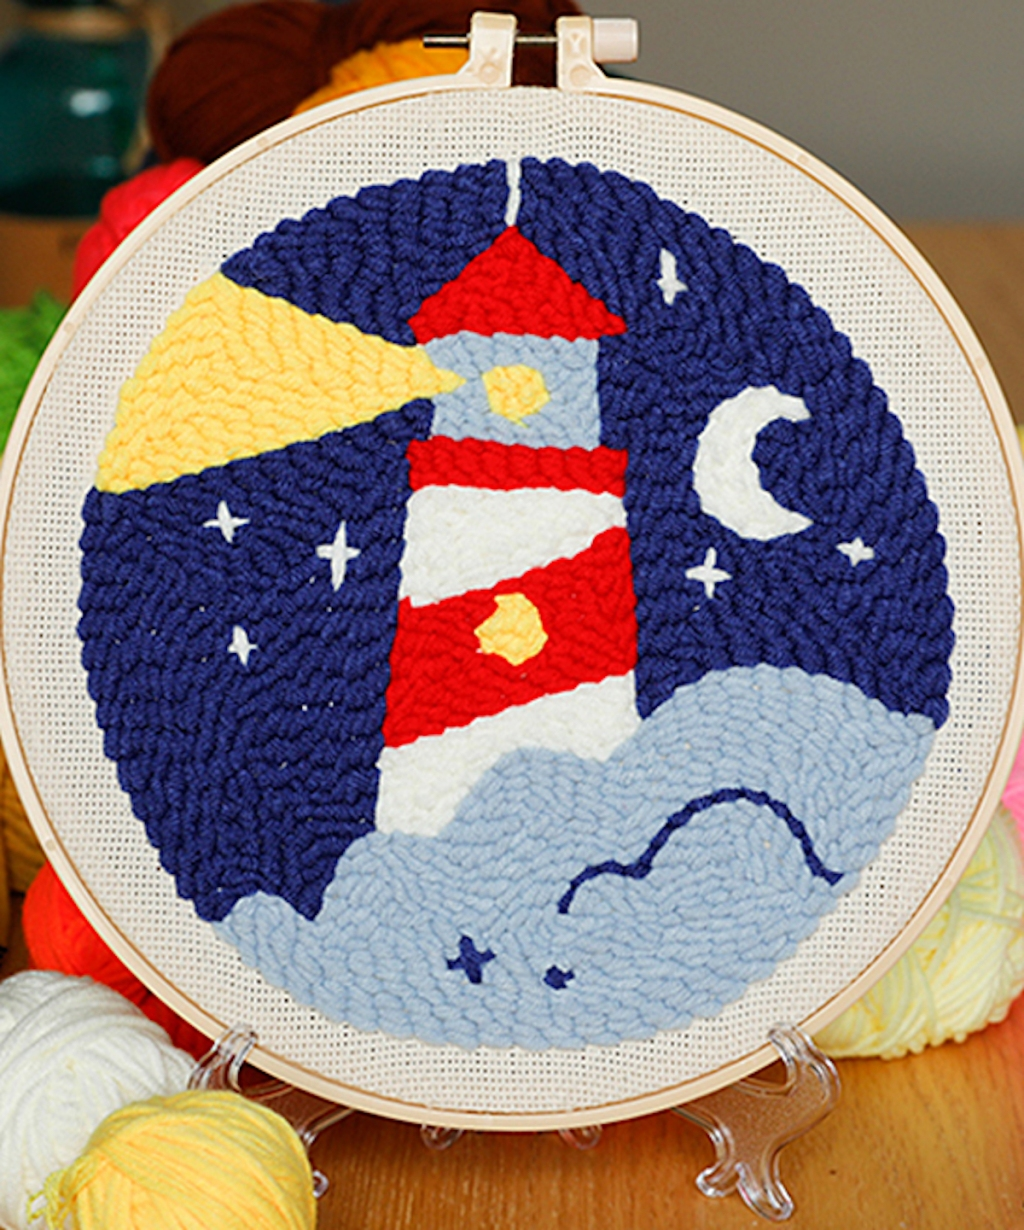 lighthouse punch needle image completed